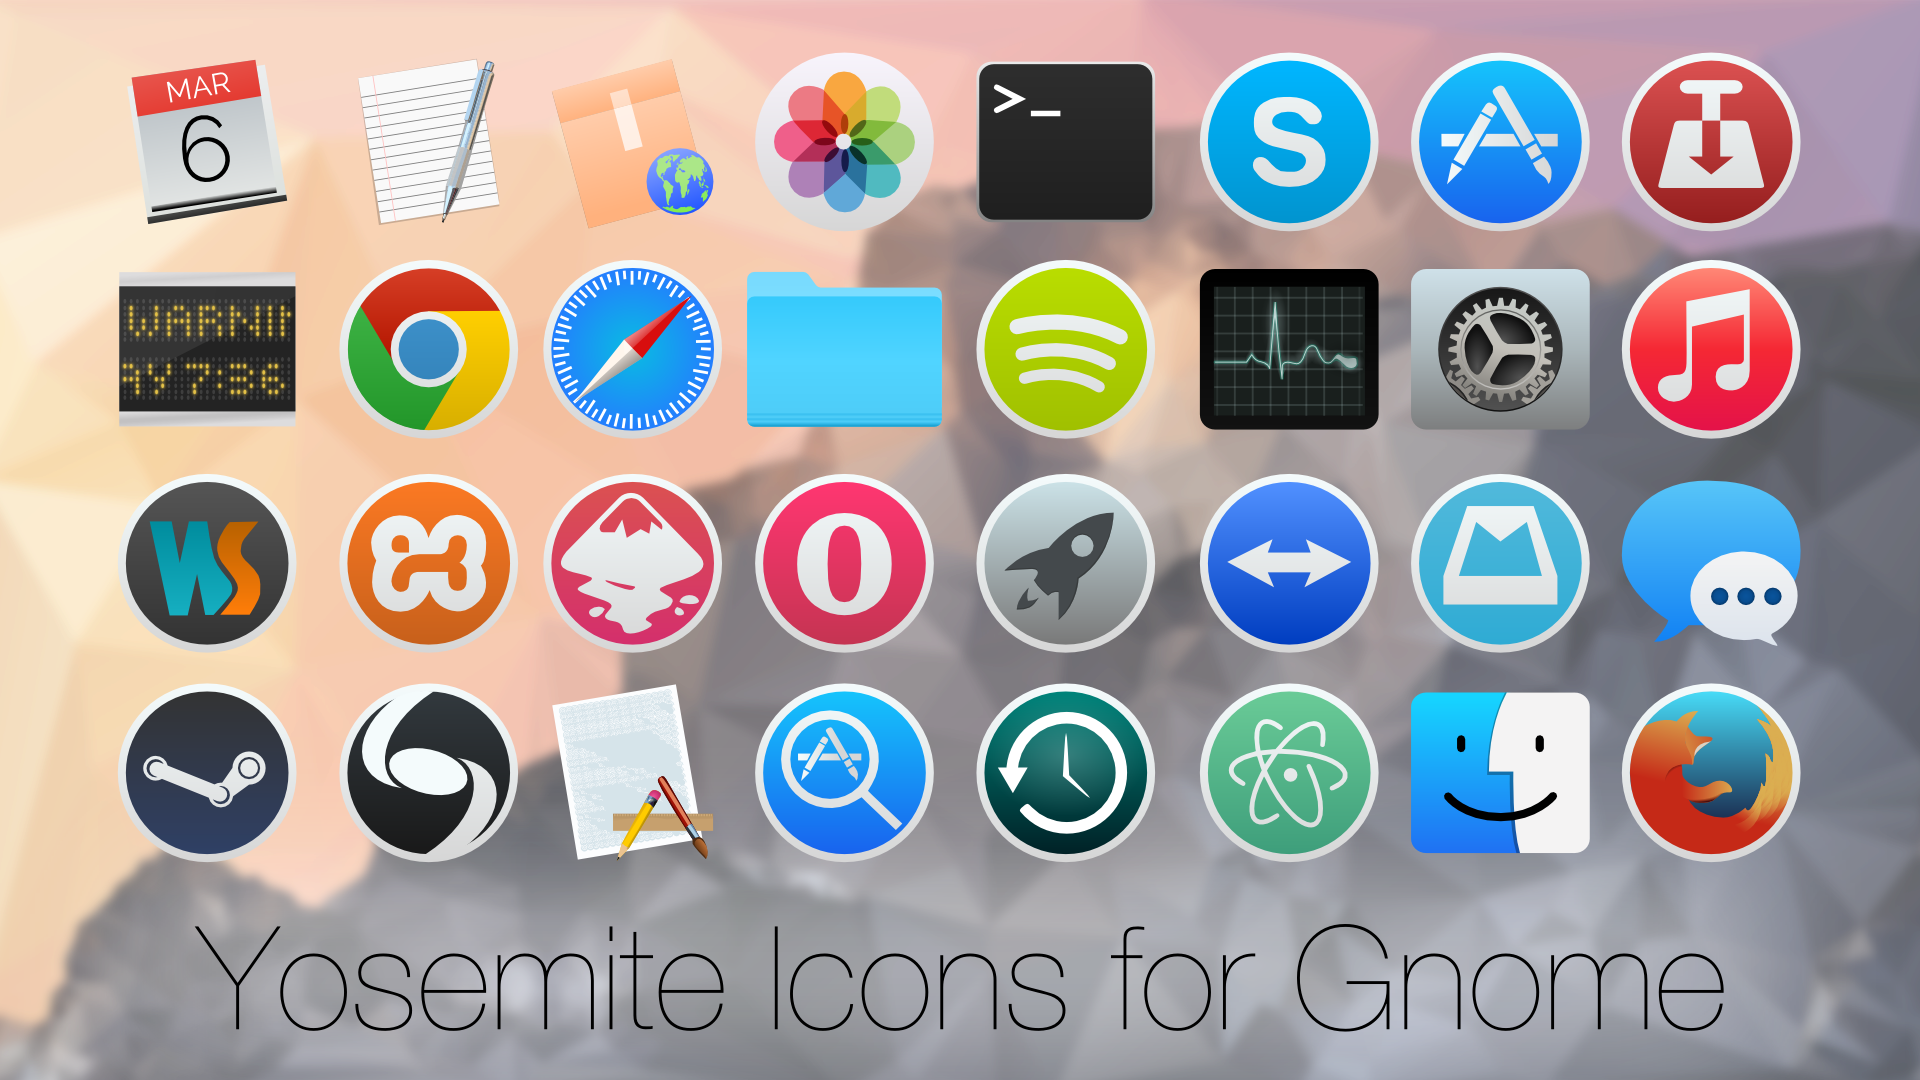 yosemite icons for linux by zacpier on deviantart